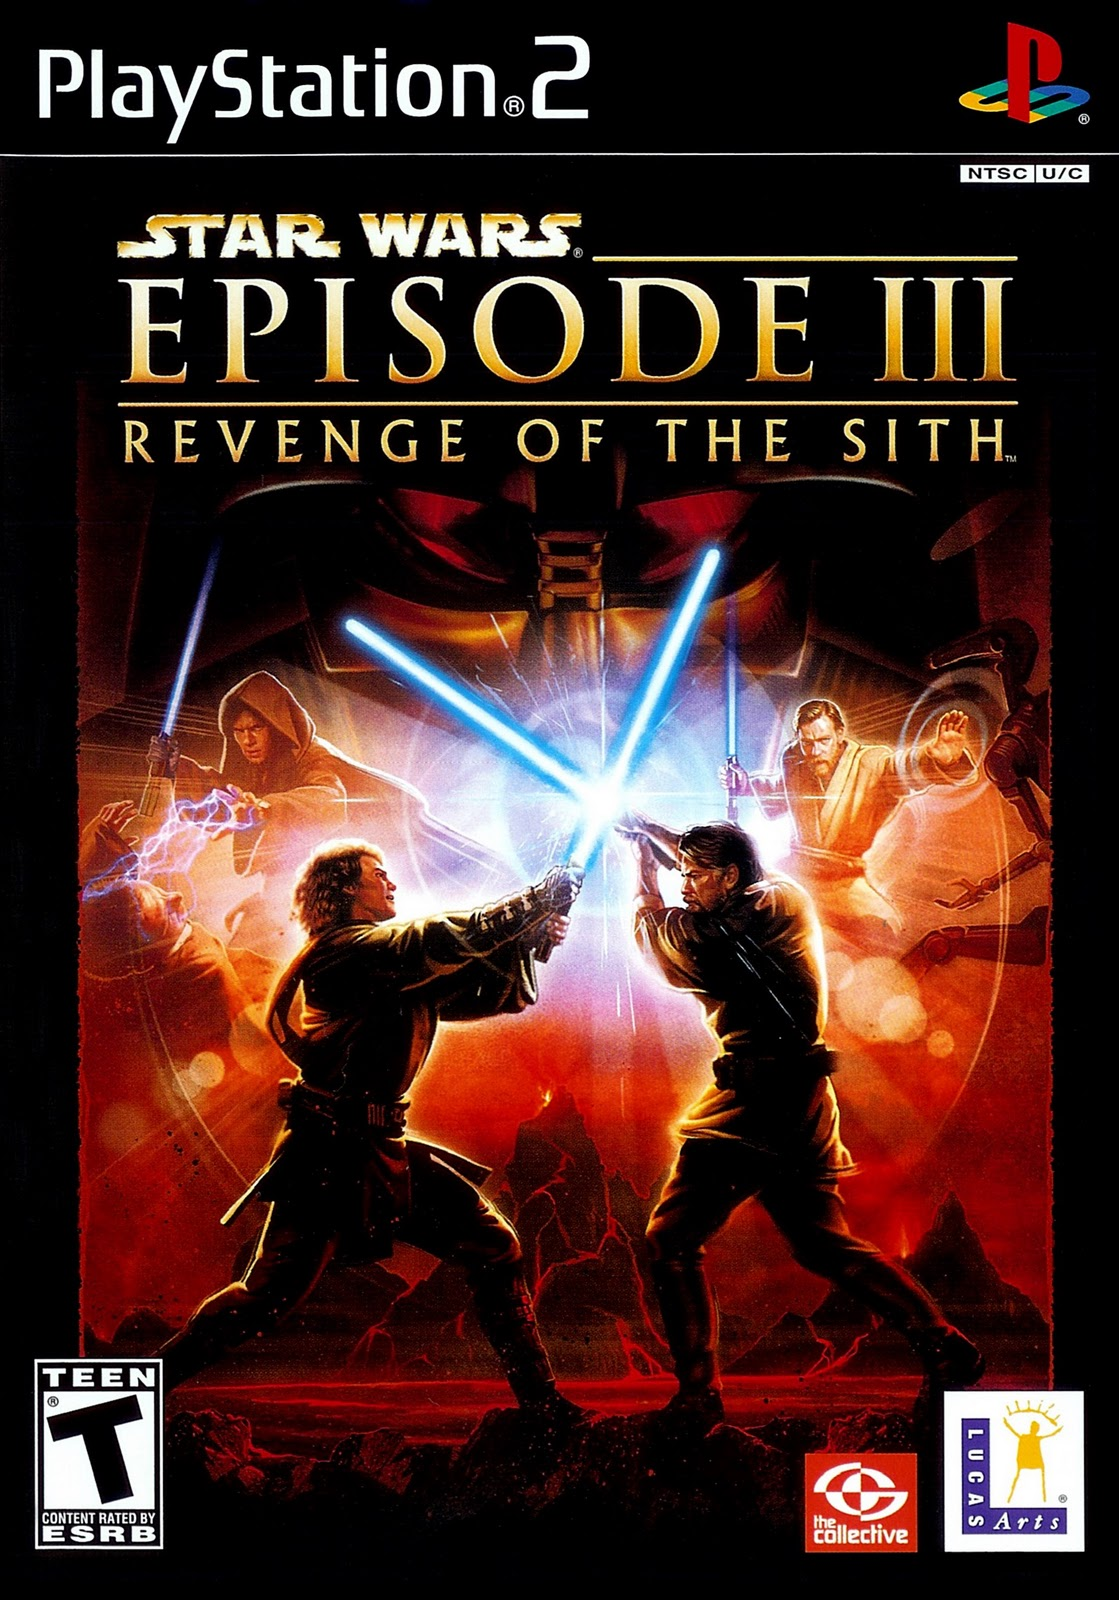 Star wars episode iii revenge of the sith video game star wars episode